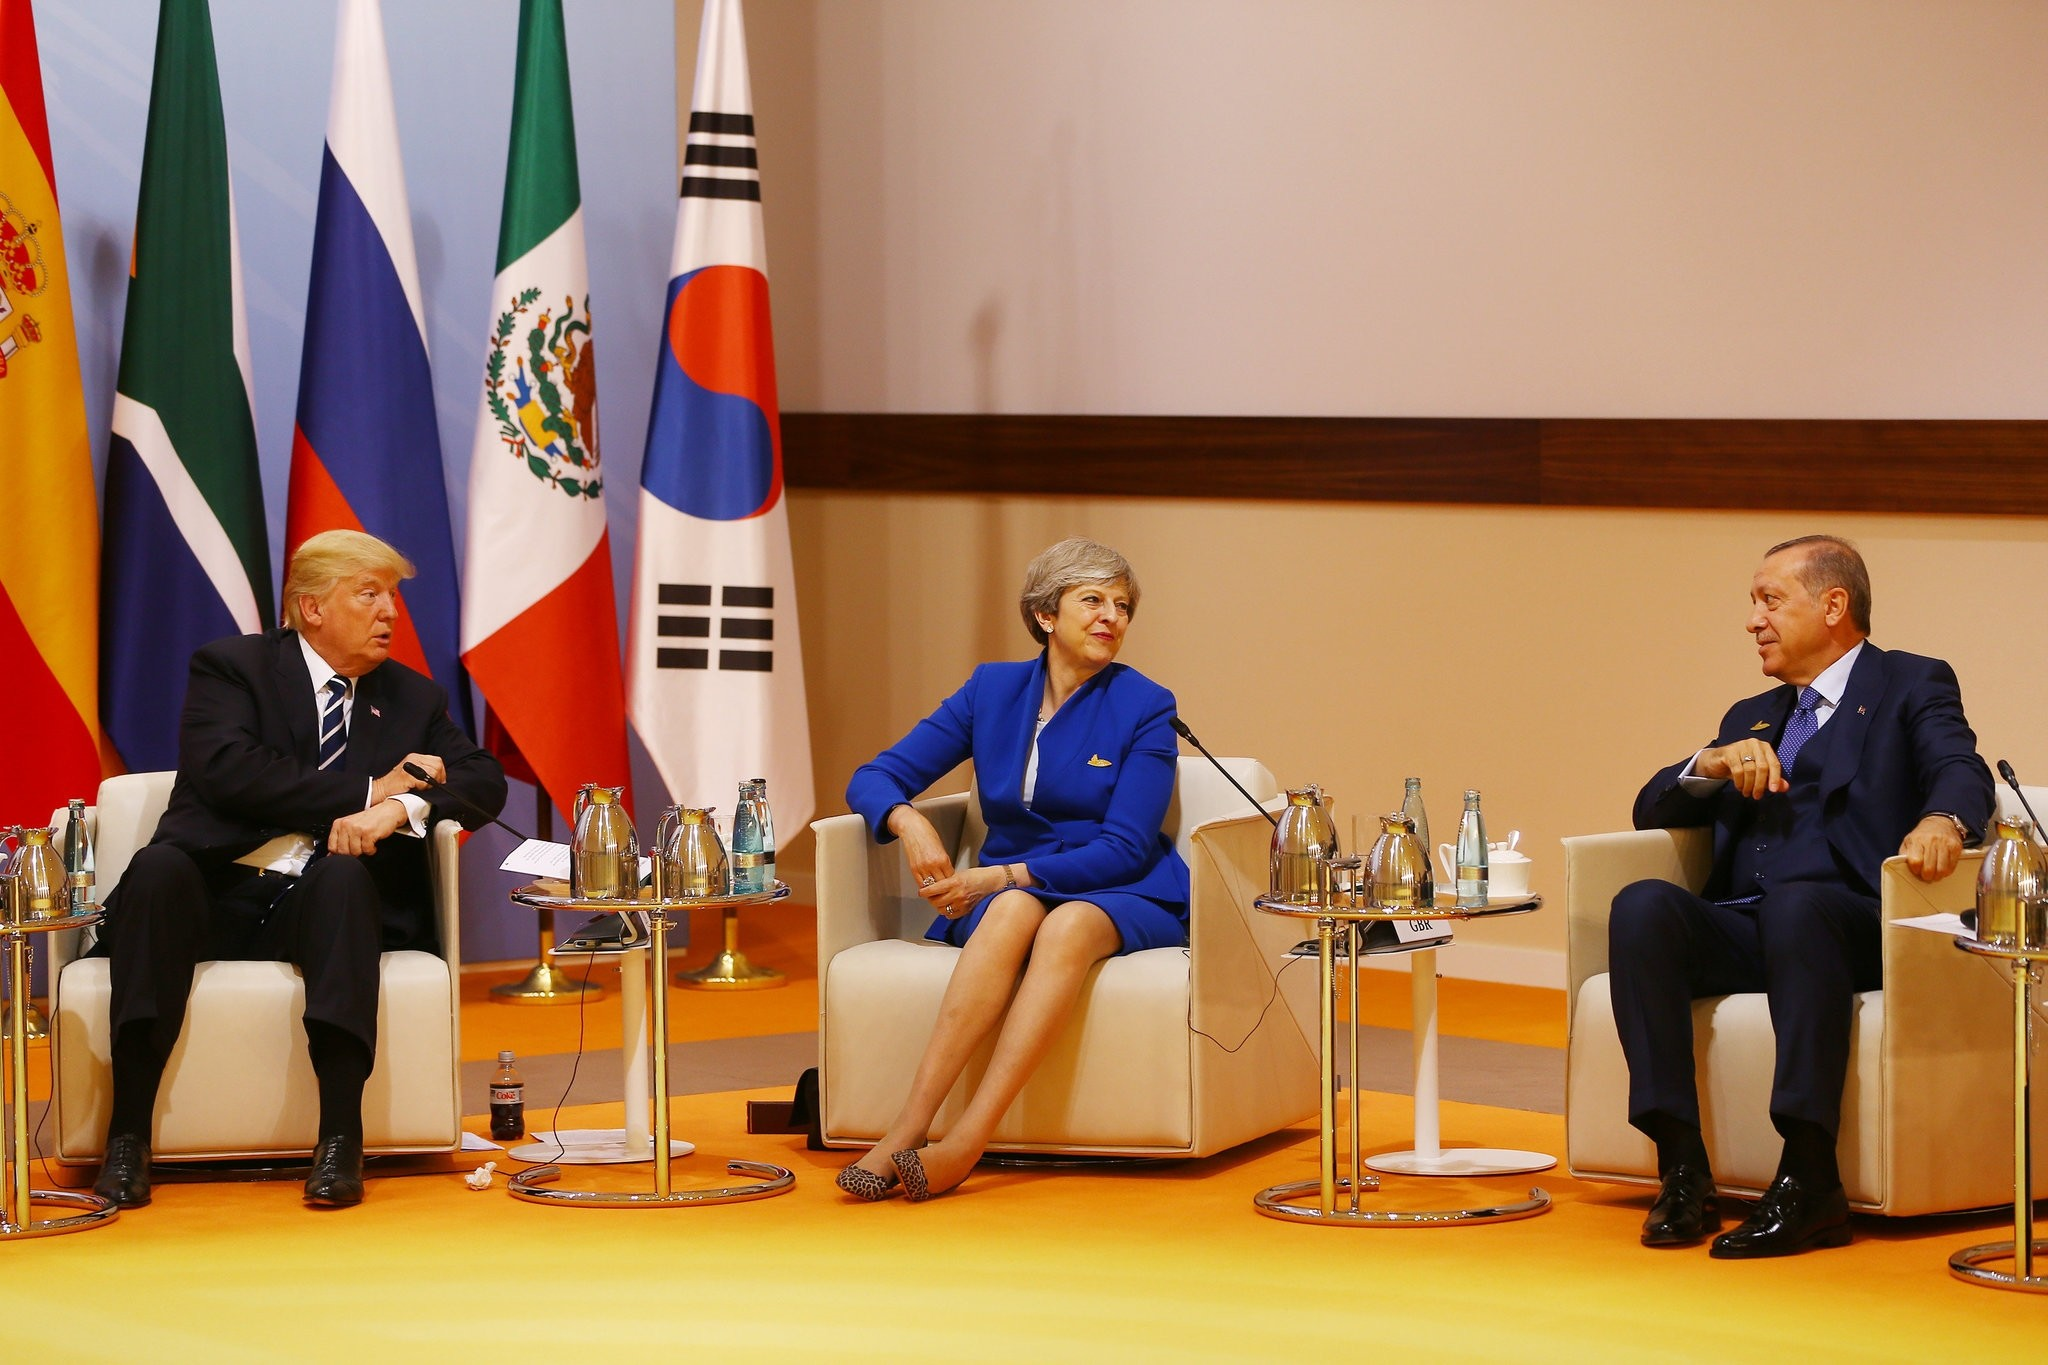 U.S. President Trump (L), British Prime Minister May (C) and President Erdou011fan during a session at the G20 summit, Hamburg, July 7, 2017.